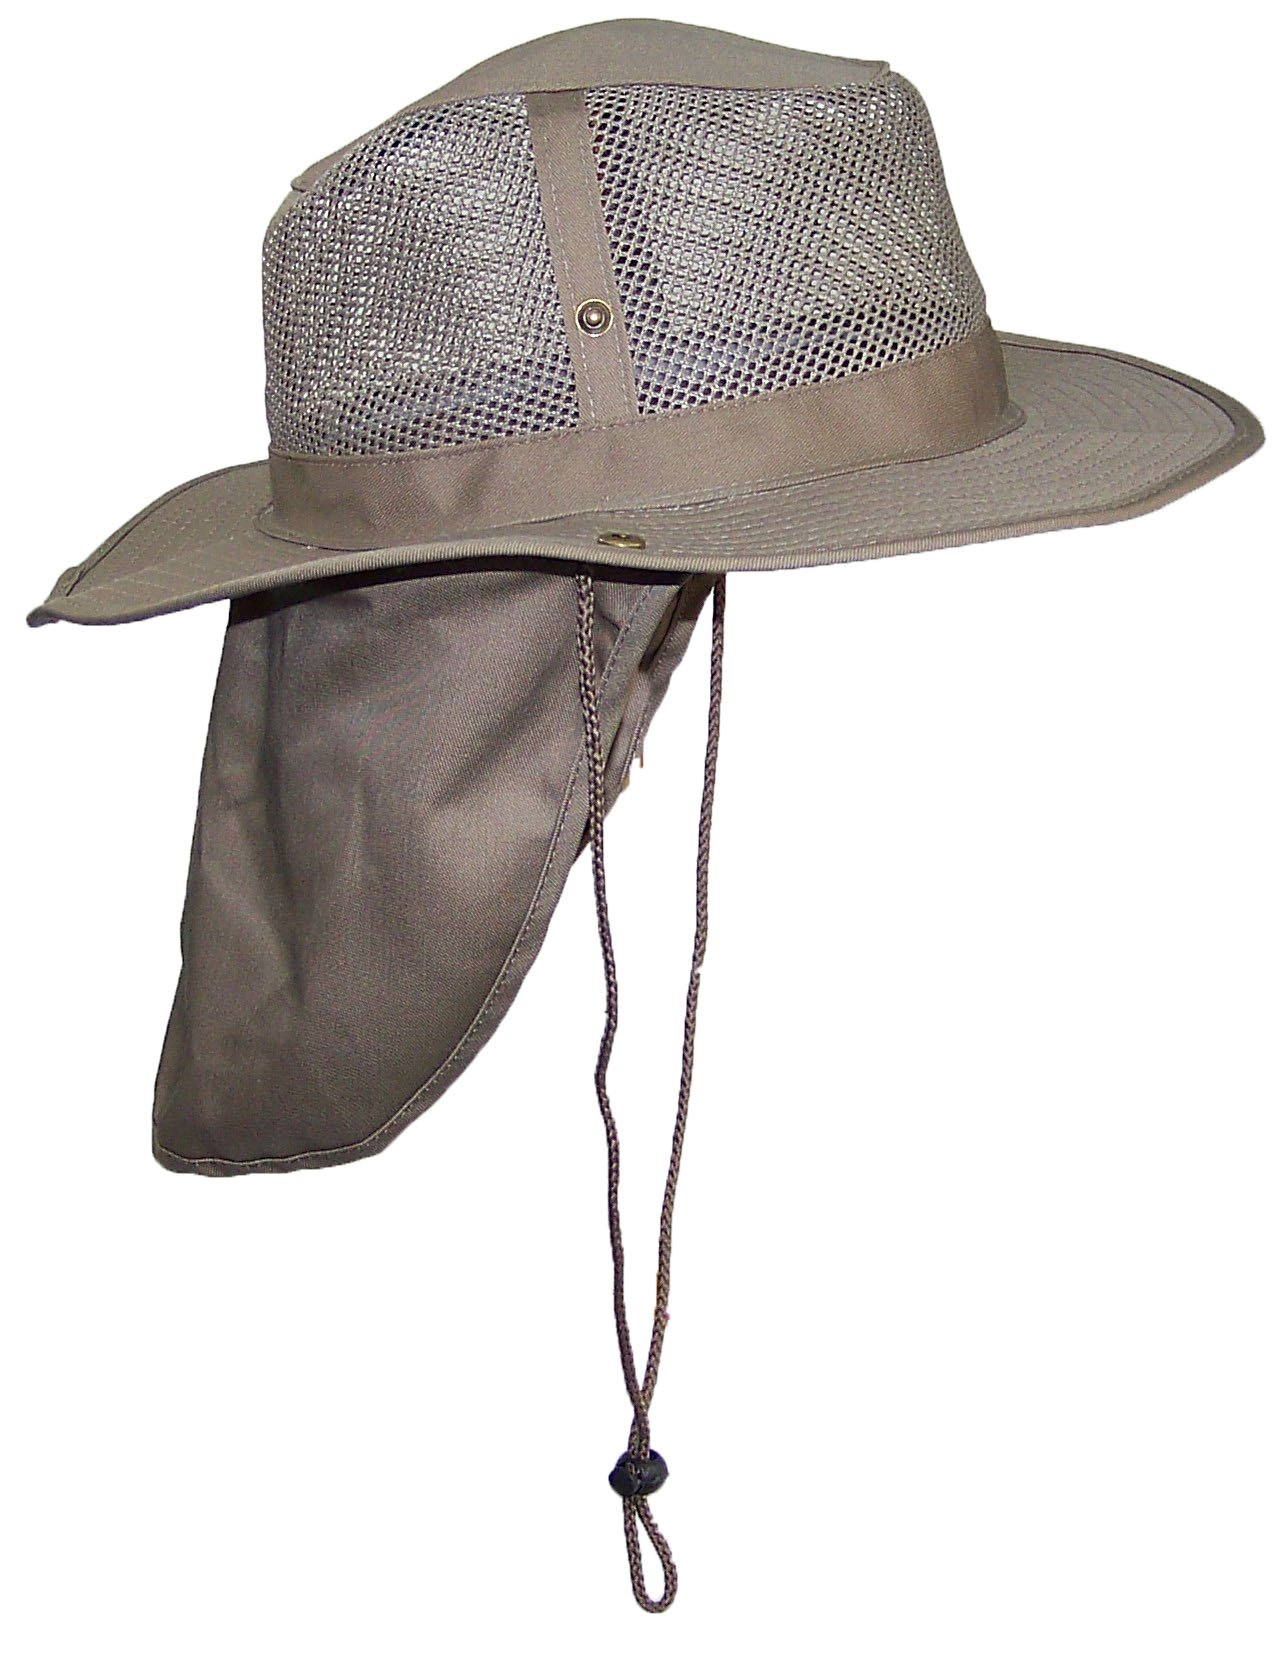 Buy Tropic Hats Kid Child Wide Brim Mesh Summer Hat with Neck Flap ... a8f2b322c860